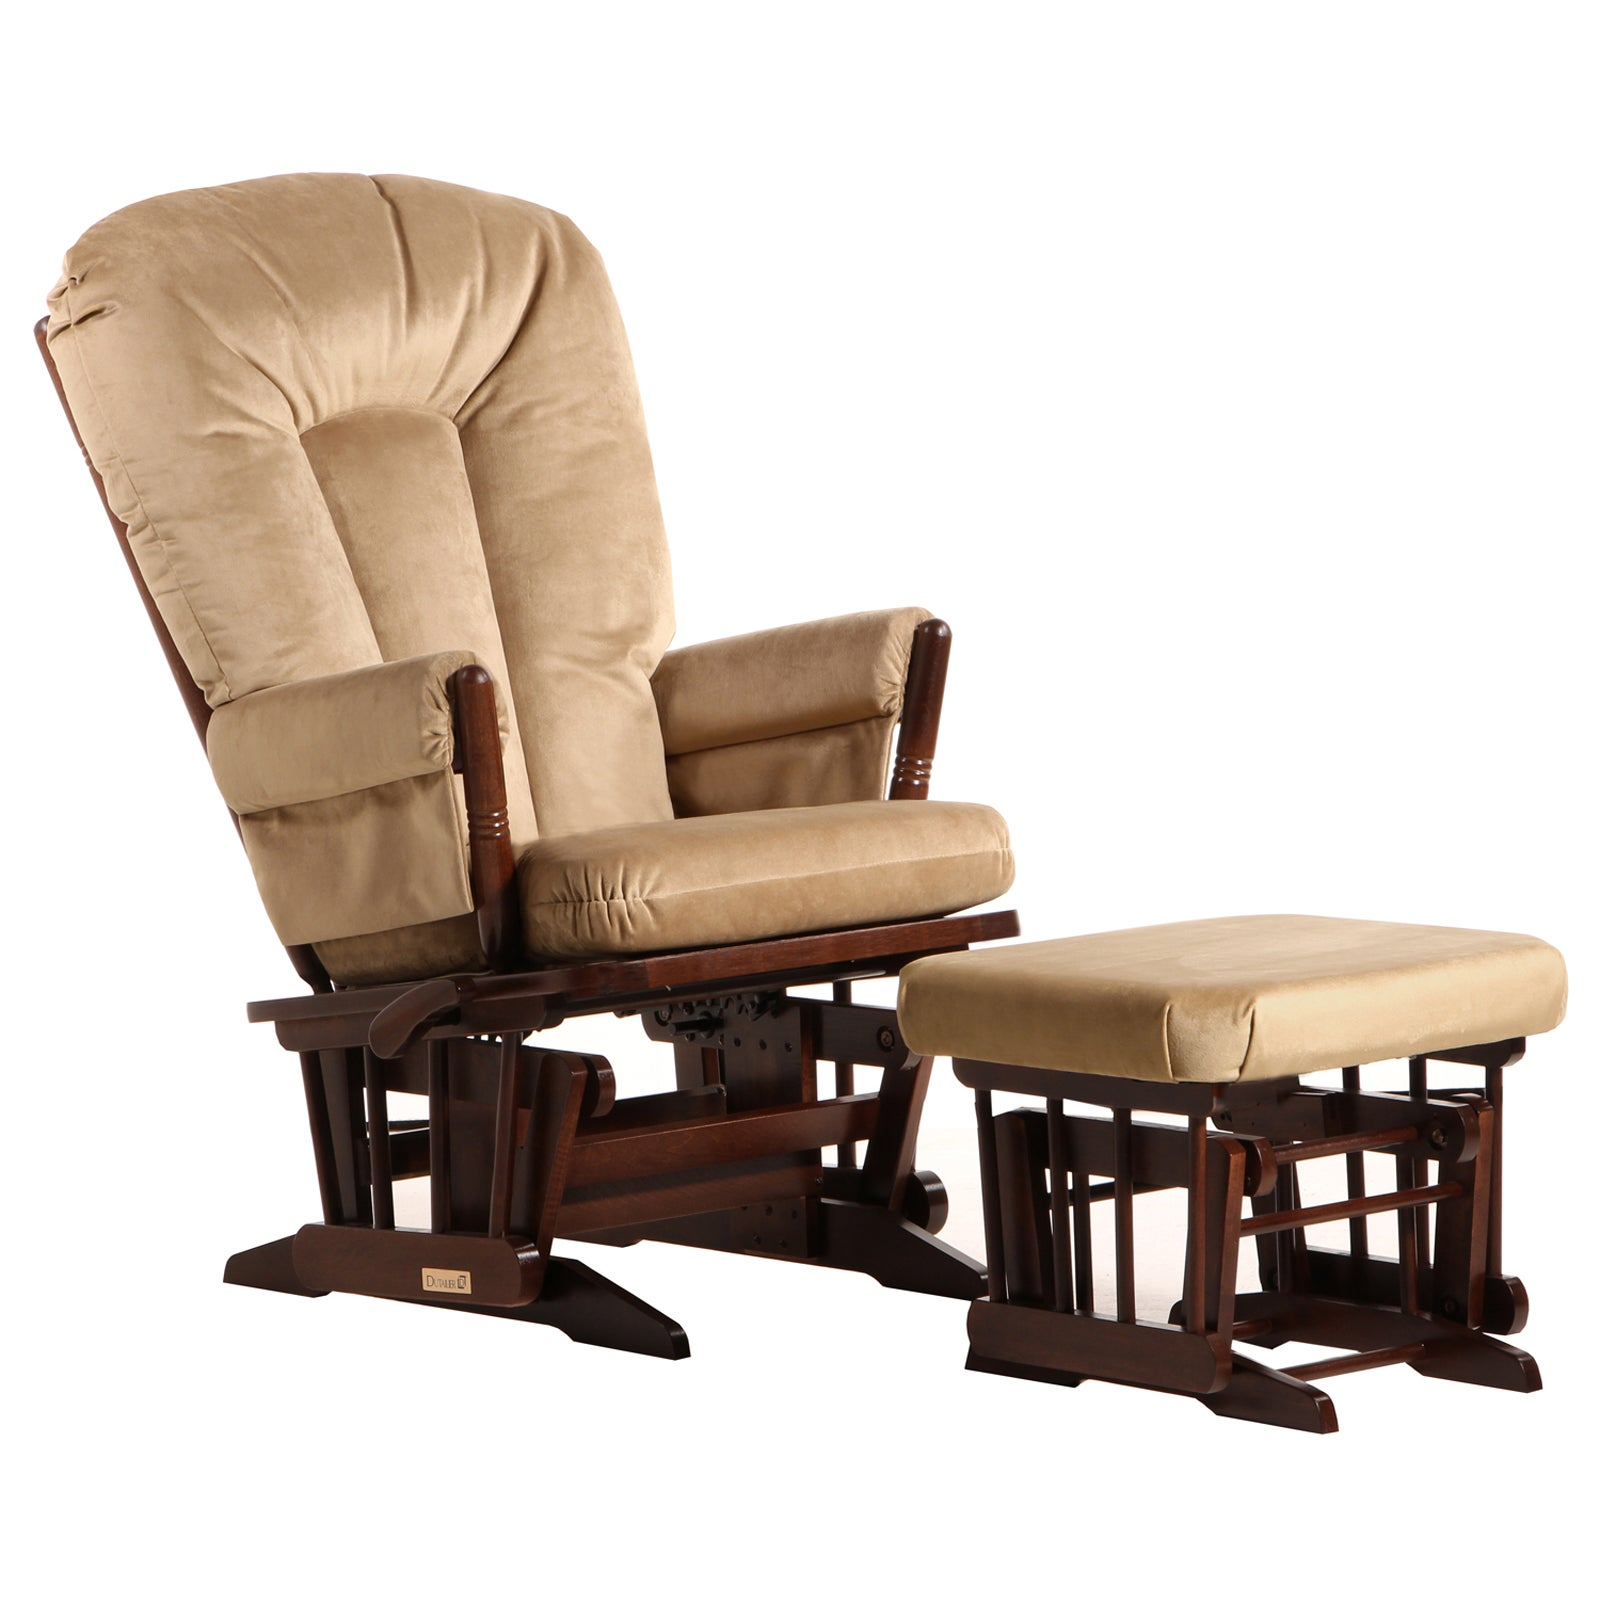 Dutailier Ultramotion Coffee/ Light Brown Multi-position, Recline 2-post Glider and Nursing Ottoman Set at Sears.com